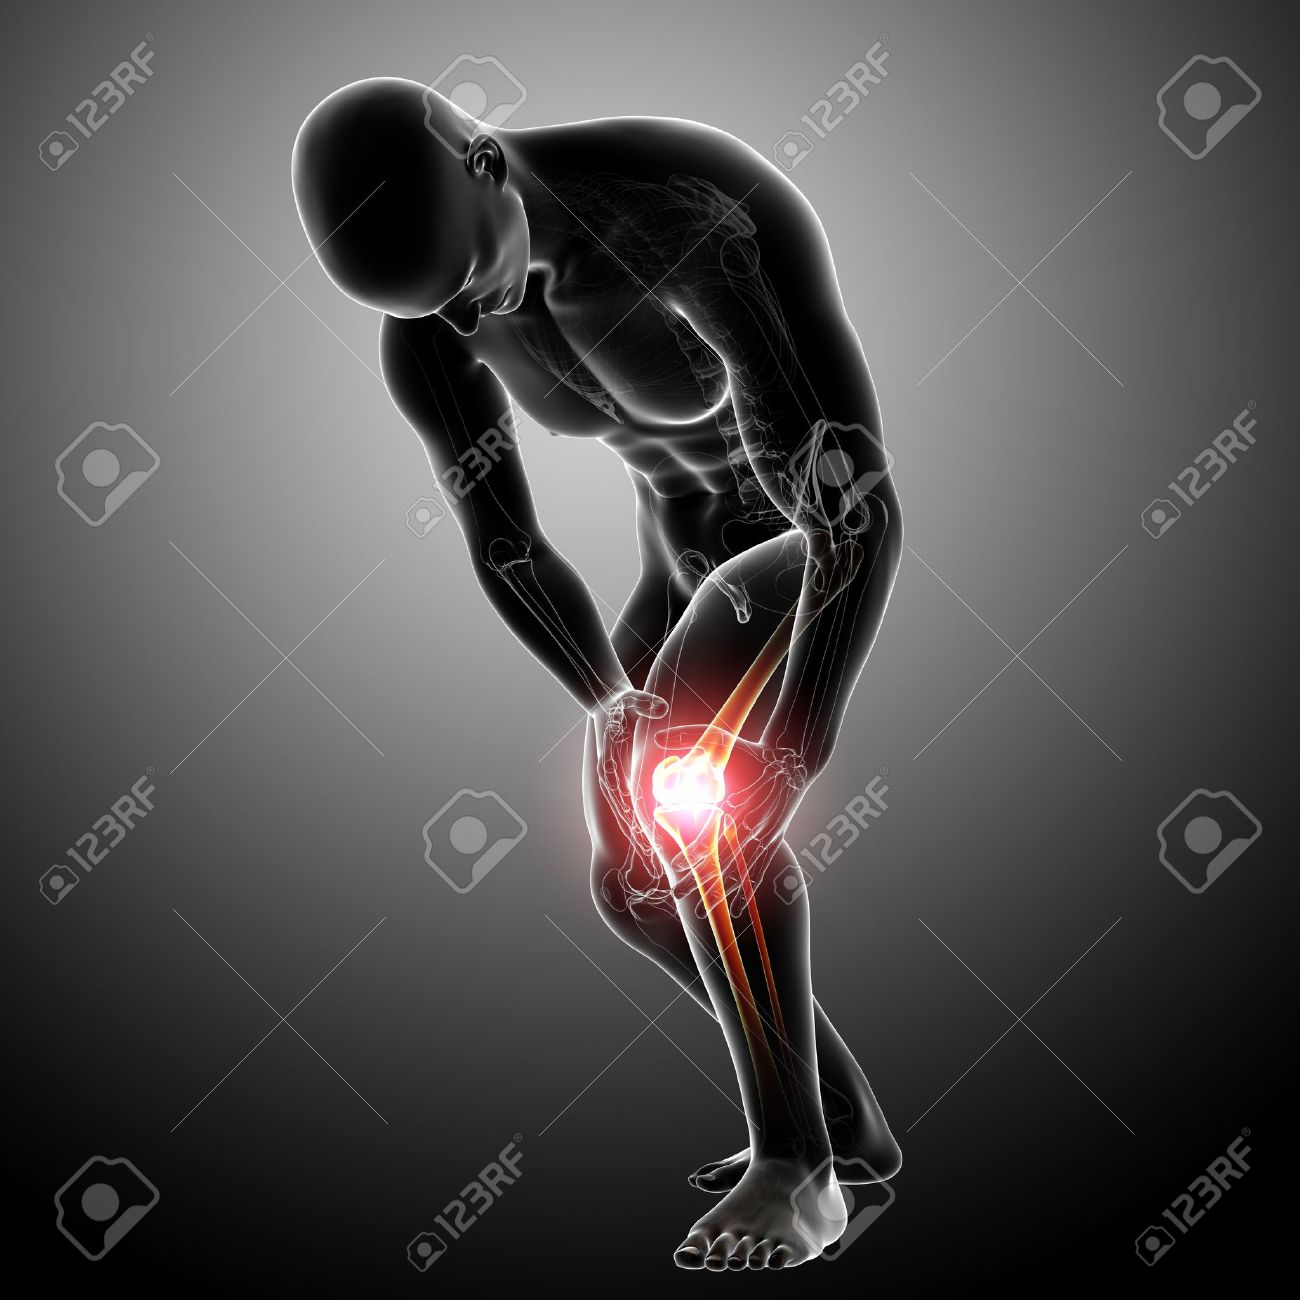 X-ray Anatomy Of Knee Pain Gray Stock Photo, Picture And Royalty ...